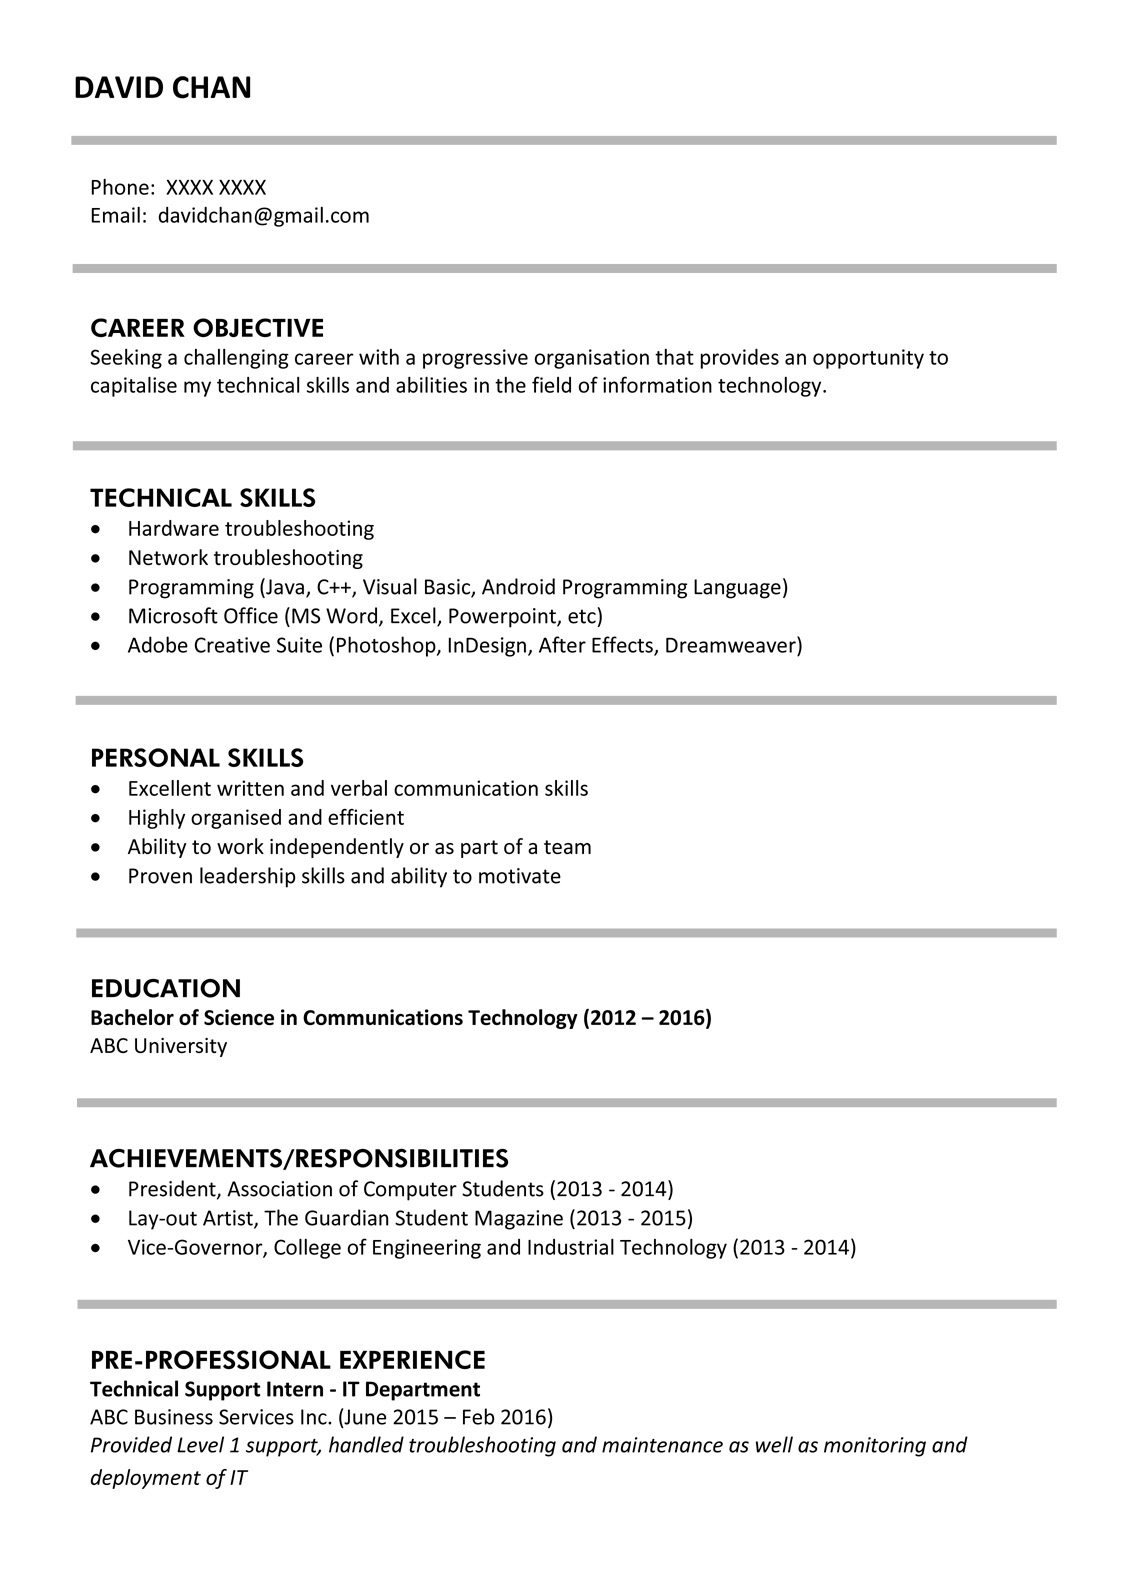 curriculum vitae sample for fresh graduate resume template column call center agent Resume Resume Template For Fresh Graduate Without Experience